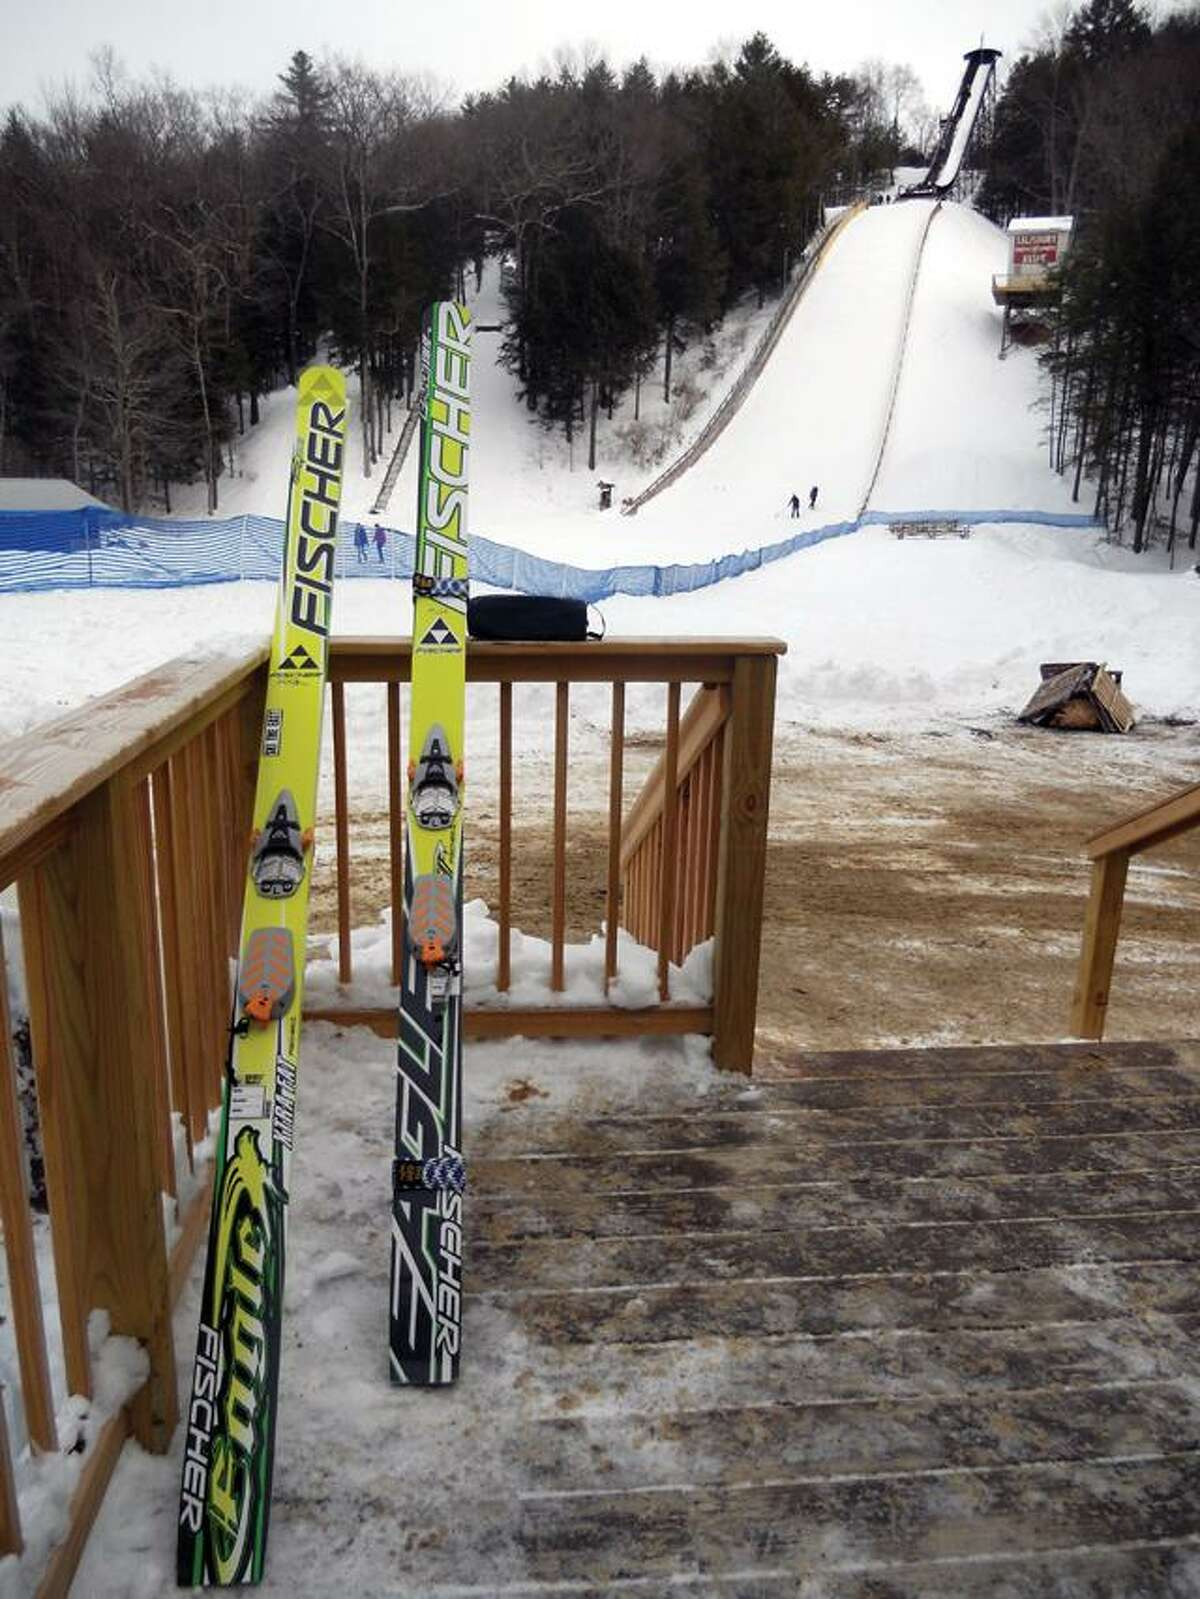 CHRIS RUELI/ Register CitizenA pair of Fischer jumping skis sit on the deck in front of the 300-foot ski jump.